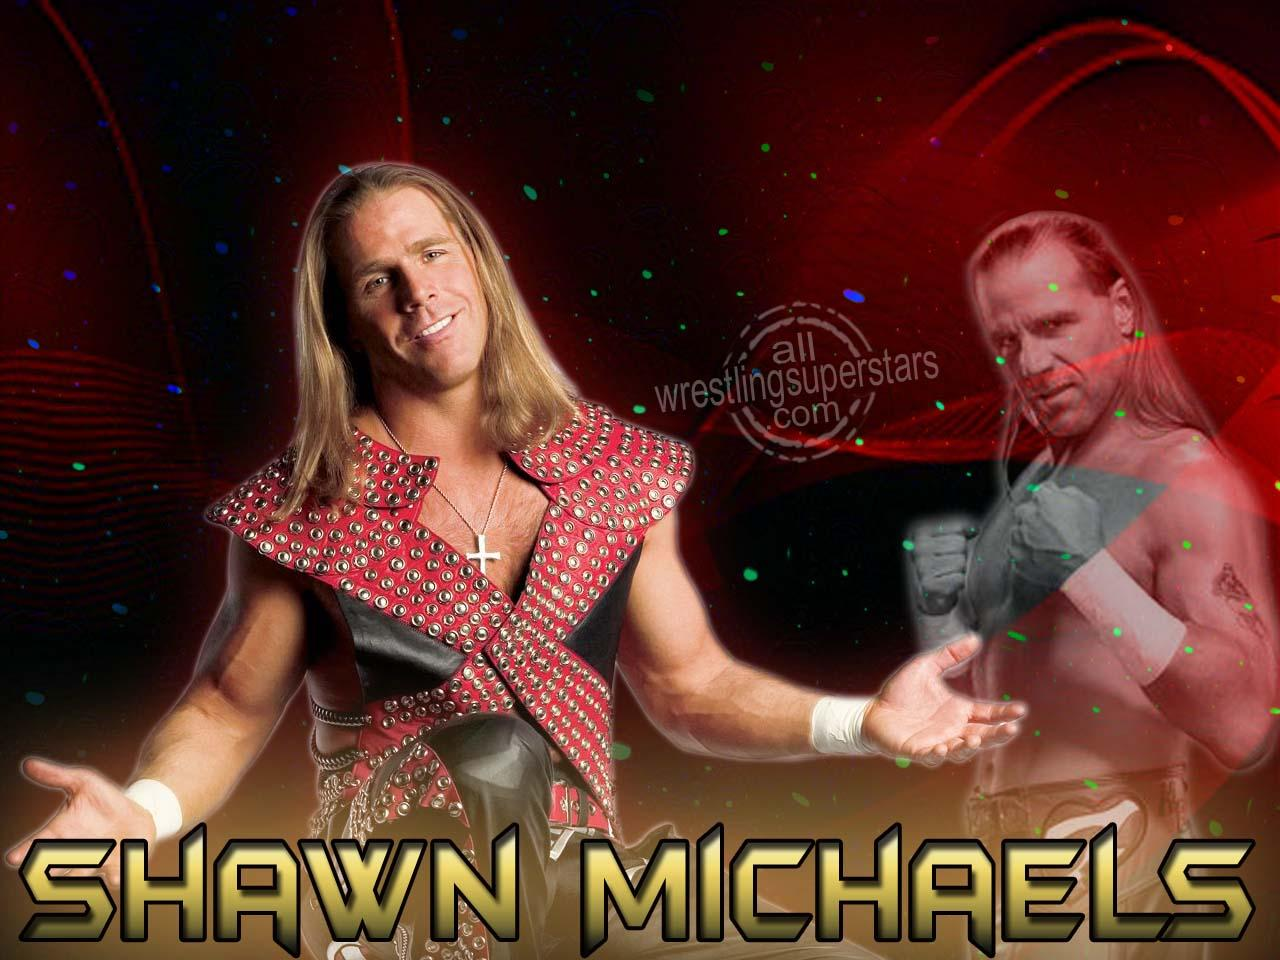 wwe wallpapers more entries wallpaper of shawn michaels shawn michaels 1280x960